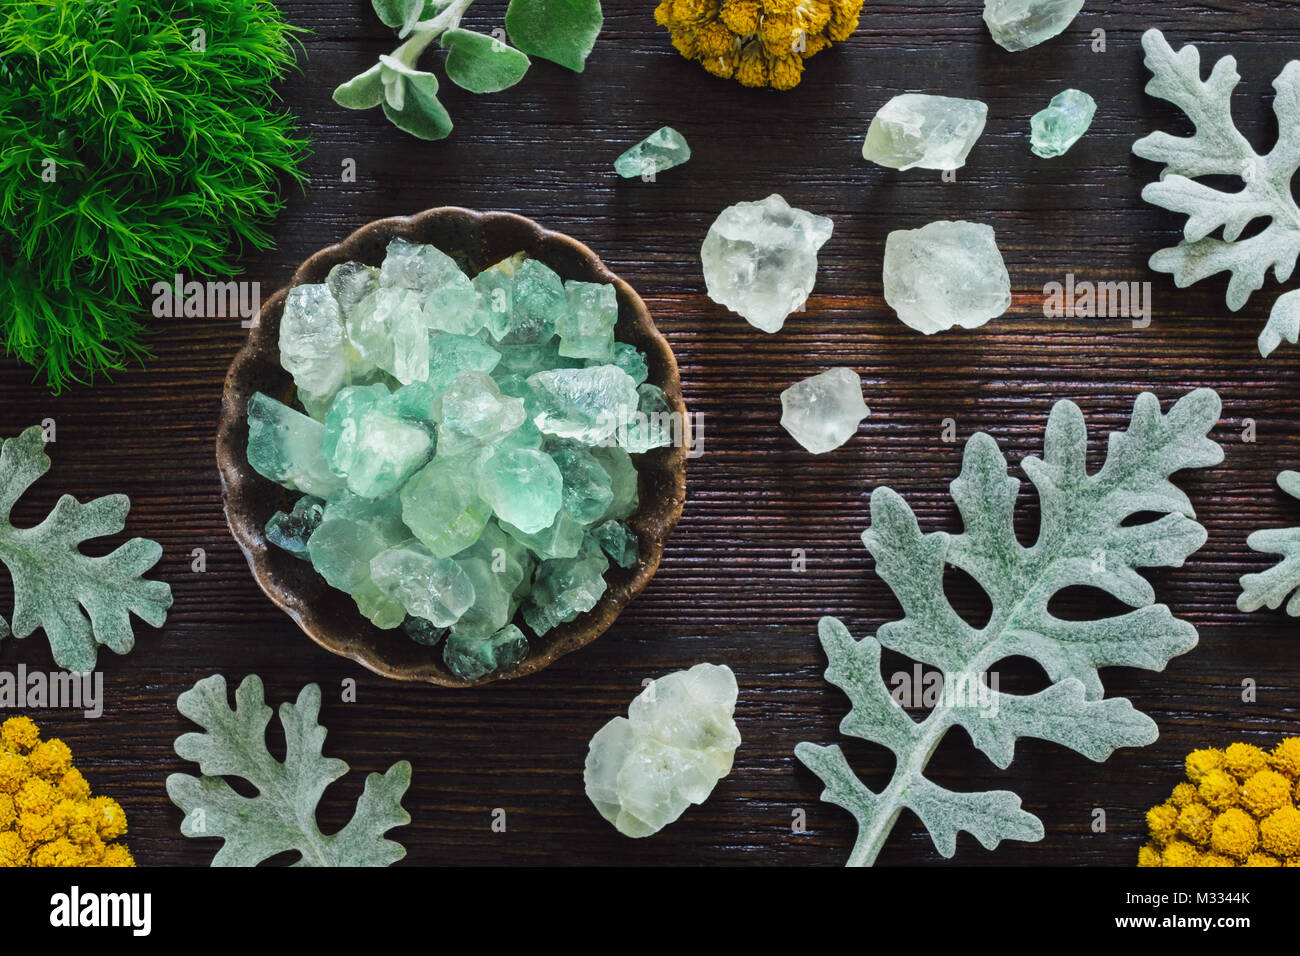 Fluorite Crystals with Dusty Miller on Dark Wood Table - Stock Image